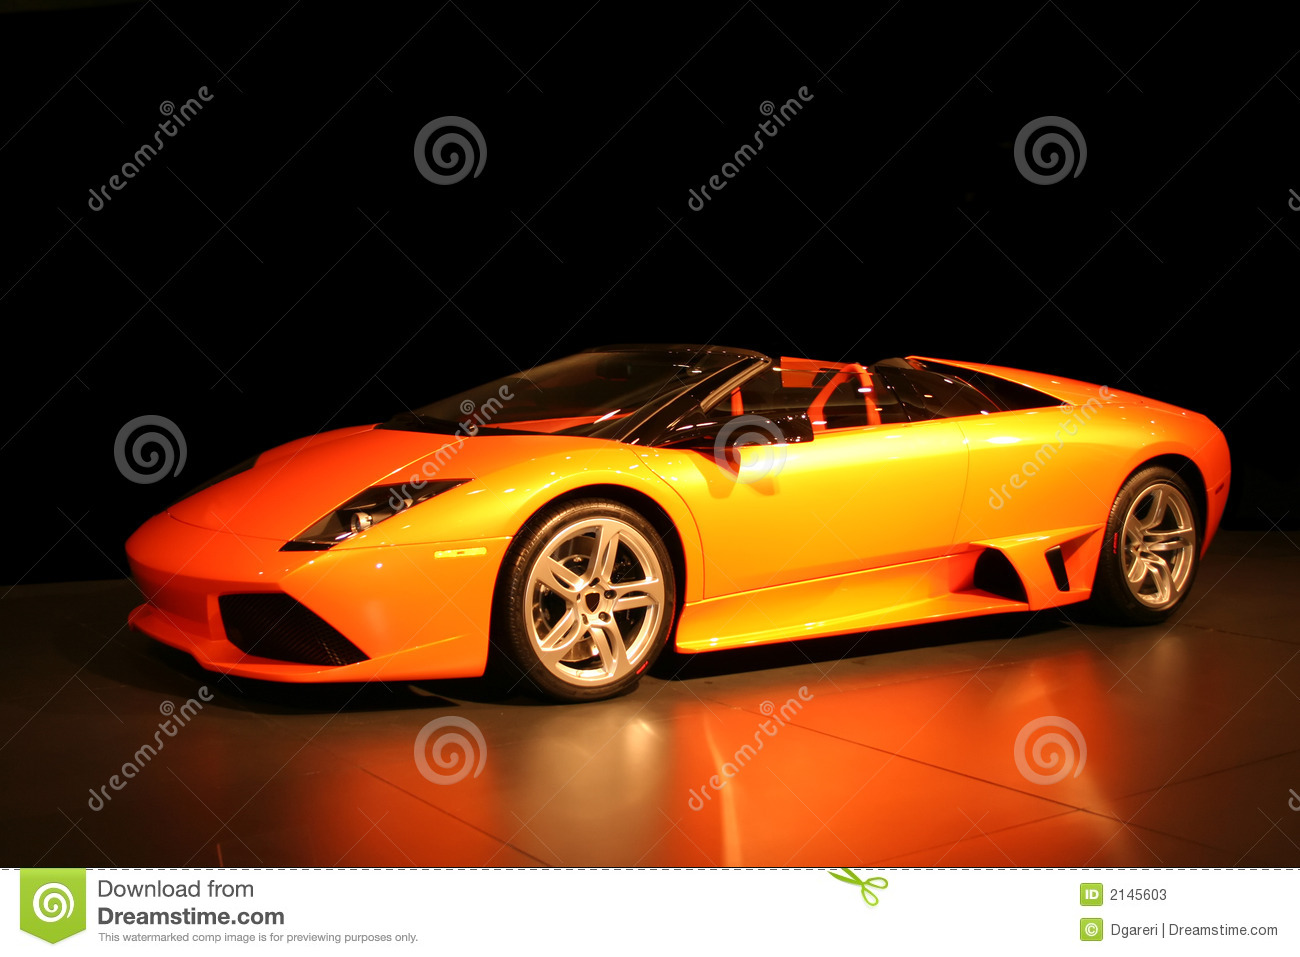 Expensive Fancy Sports Car Stock Photos Download Images - Fancy sports cars